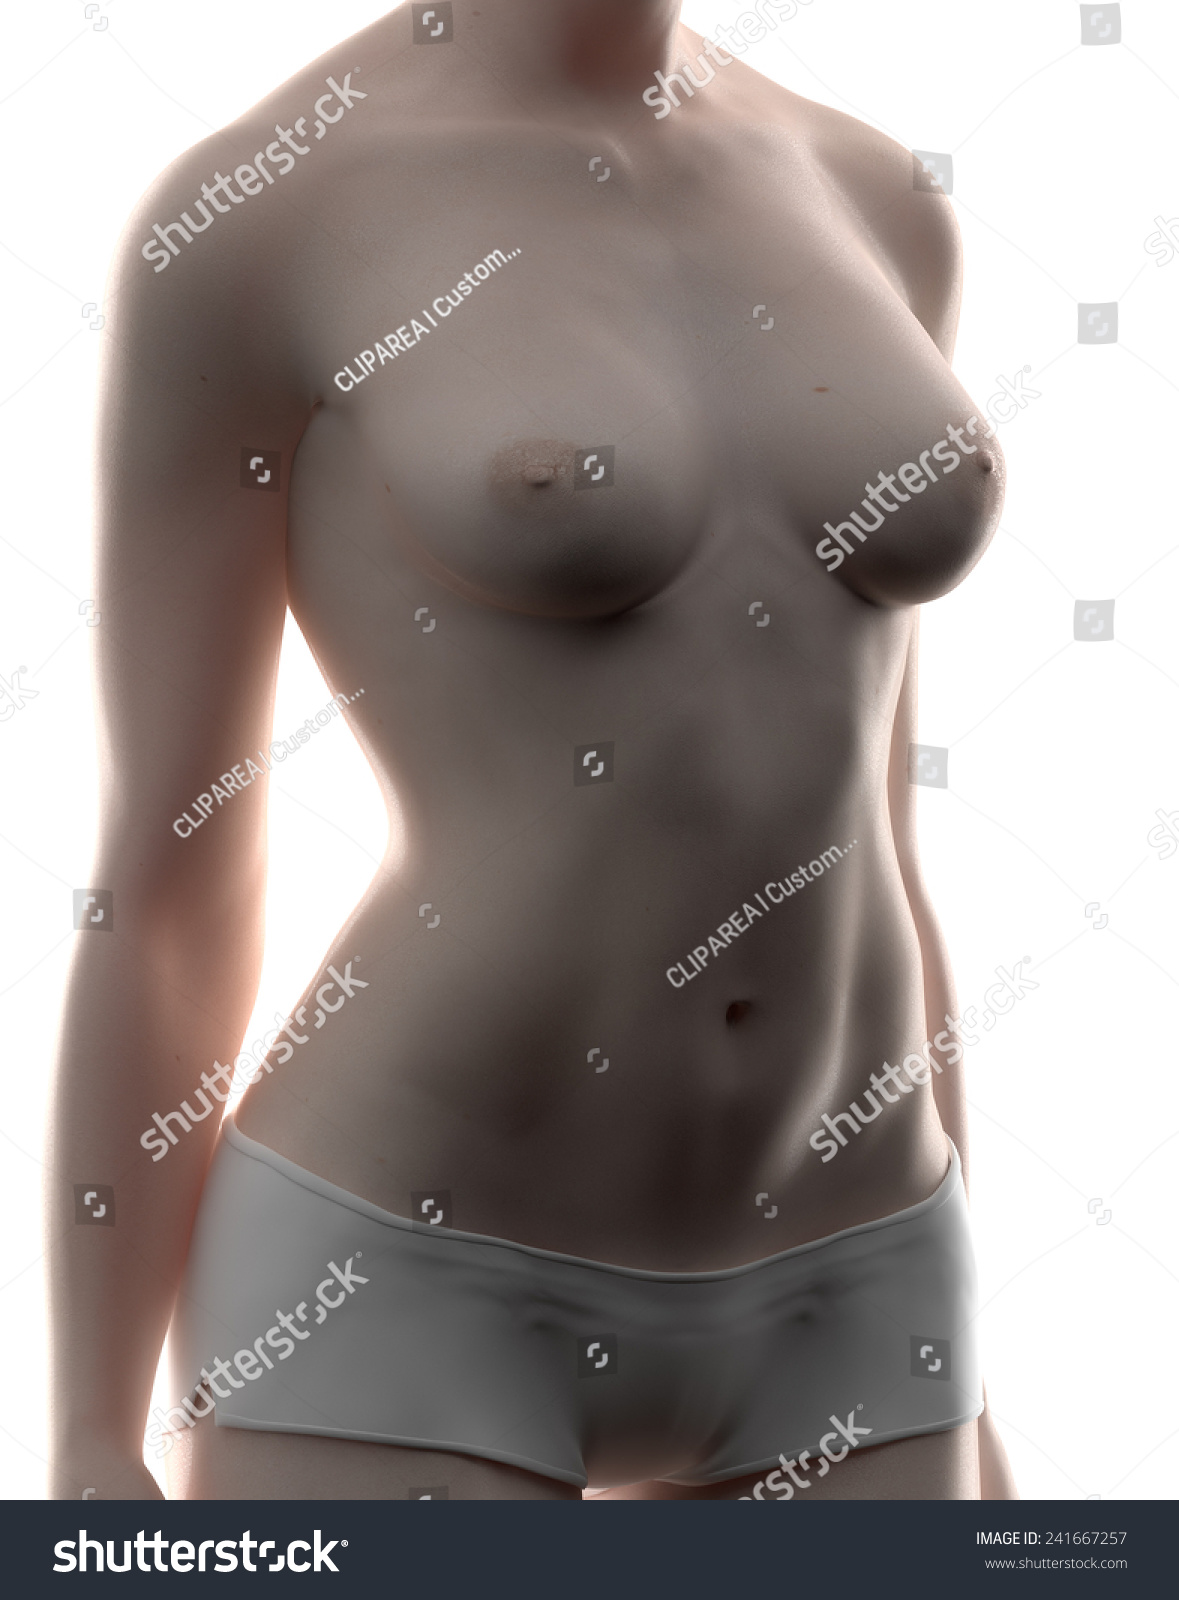 Real View Female Anatomy Pose Stock Illustration 241667257 ...